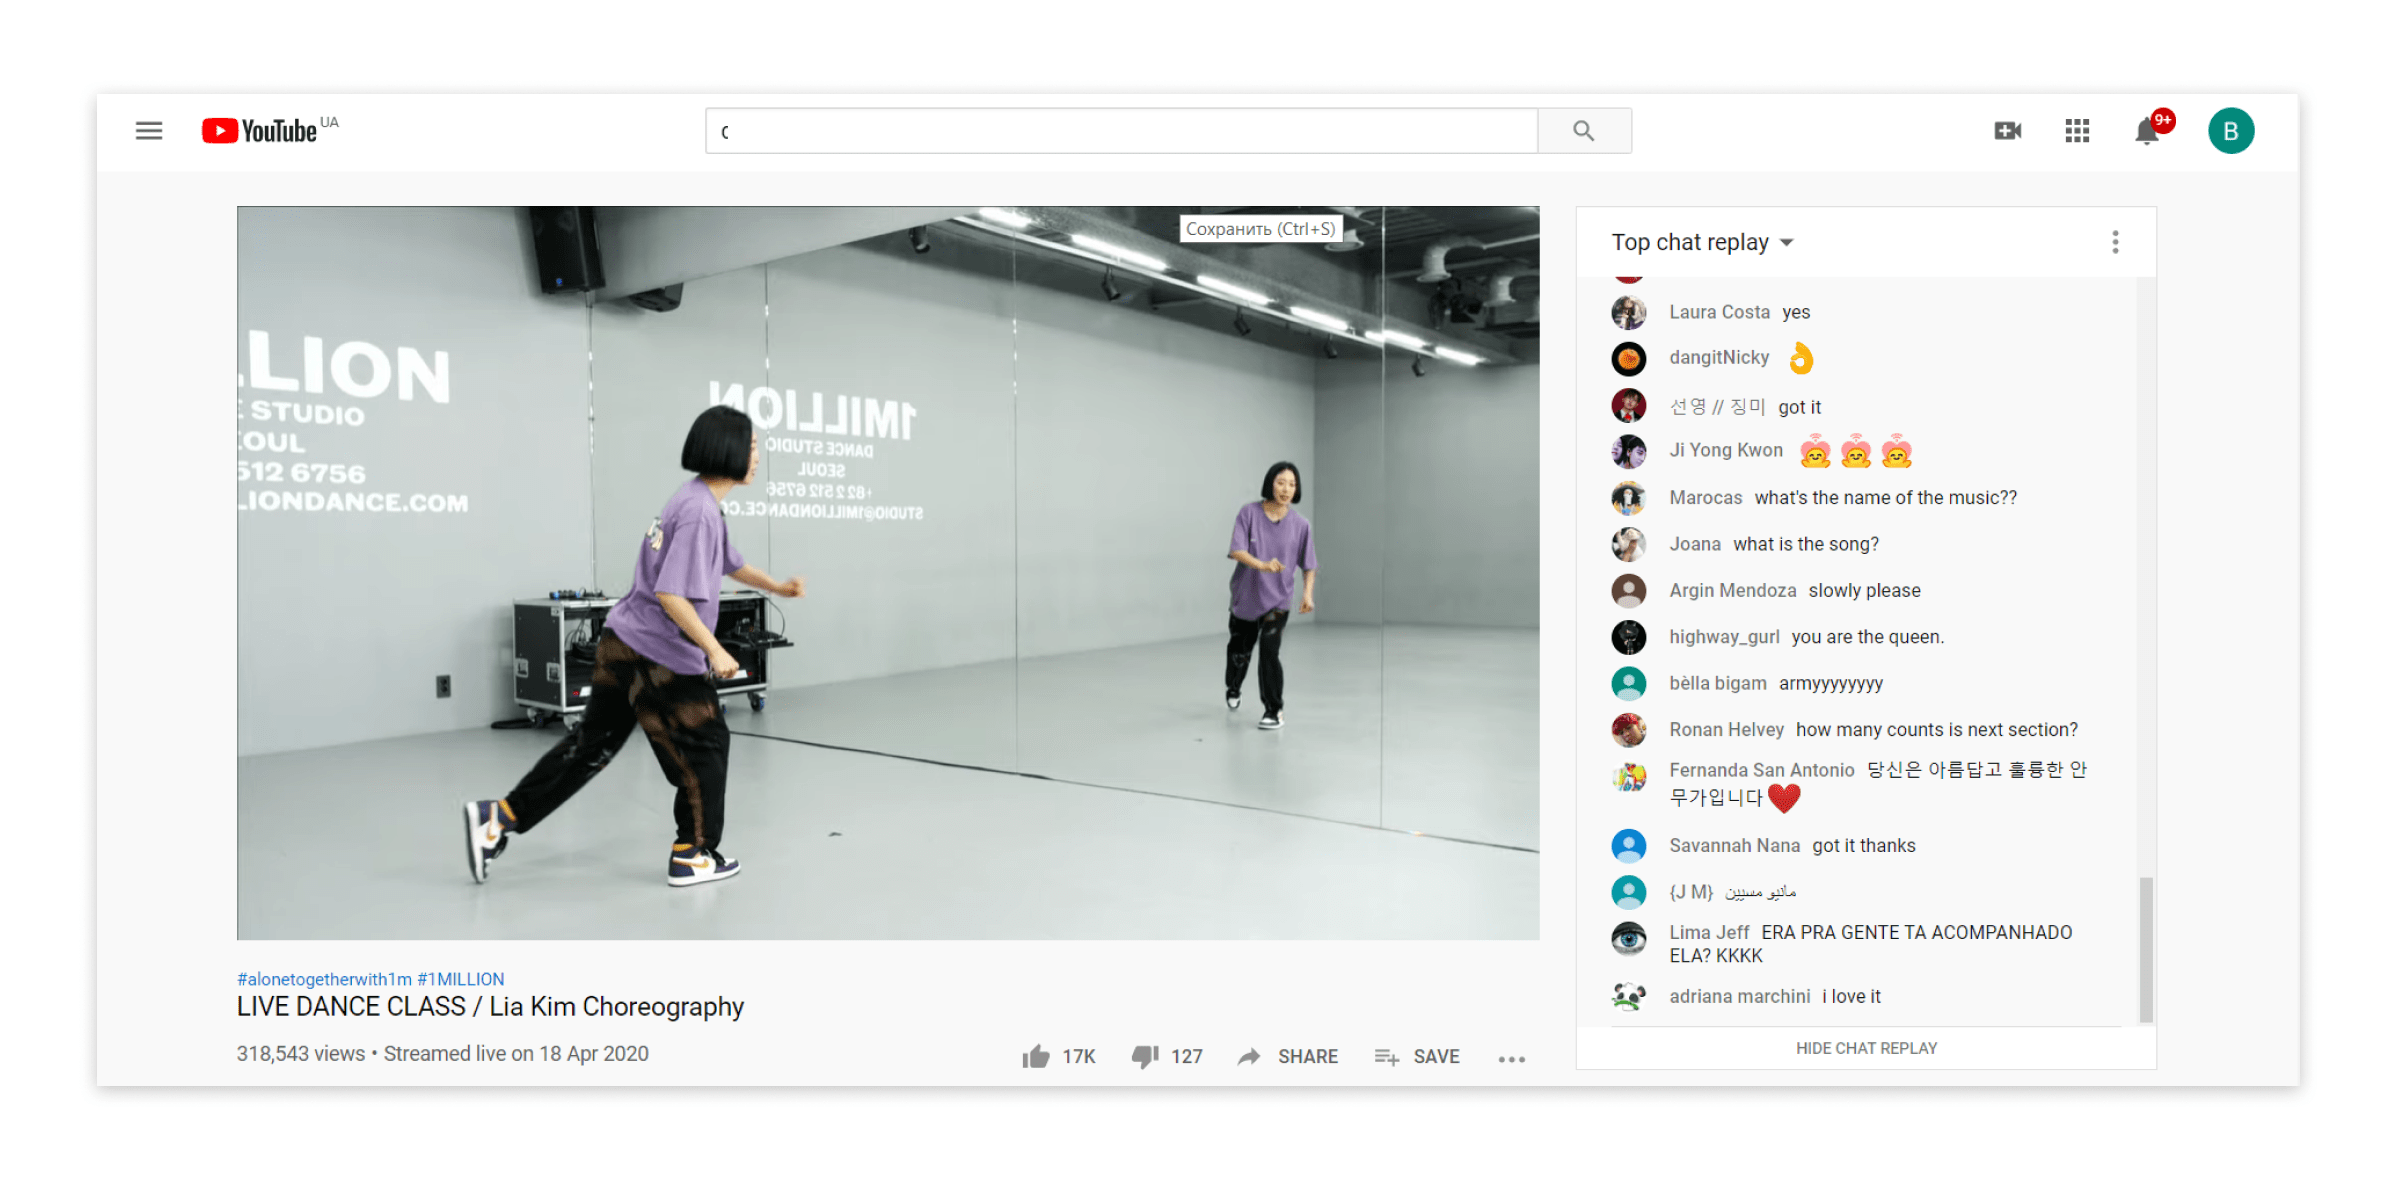 Live streaming dance classes on YouTube